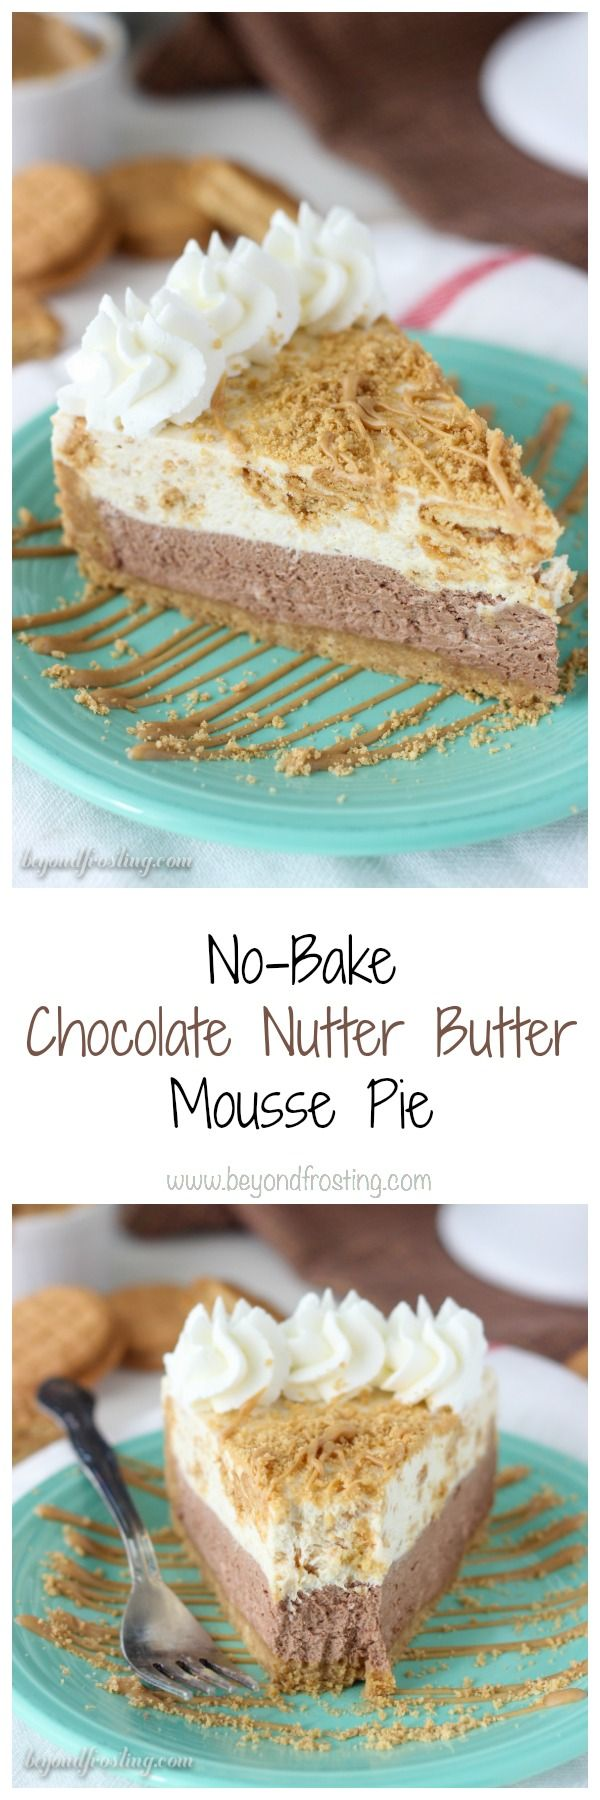 No- Bake Chocolate Peanut Butter Mousse Pie: a Nutter Butter cookie crust with a thick layer of chocolate mousse, a layer of peanut butter cookie mousse and topped with whipped cream and more peanut butter. Each layer is light and airy just like you would expect for a mousse.